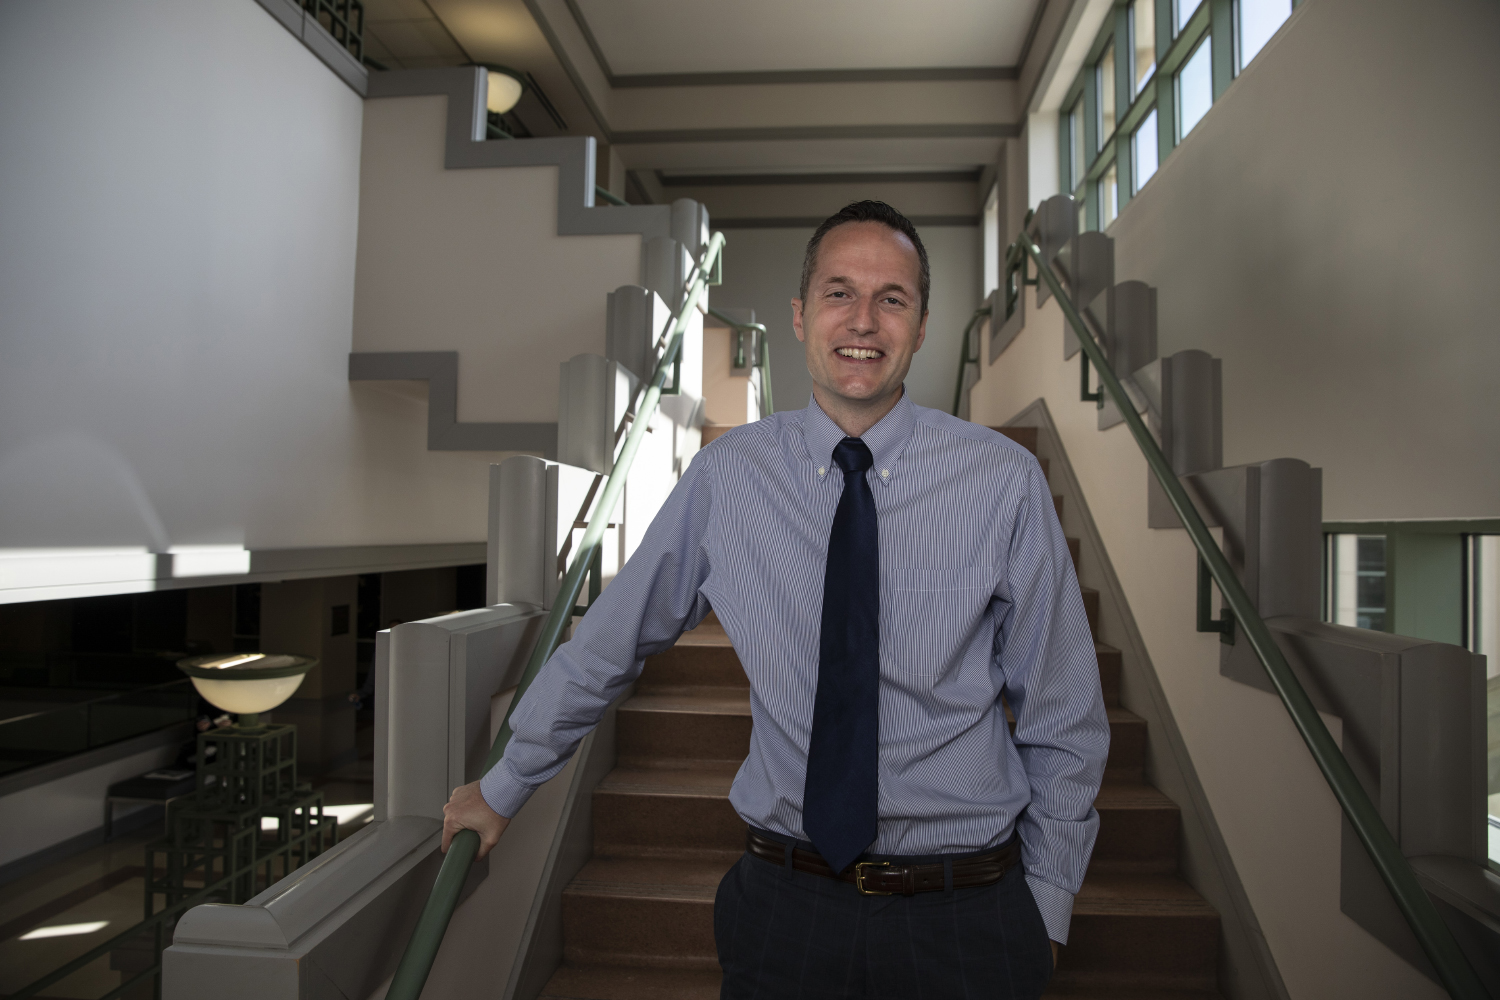 Assistant Professor of Management Daniel Newton poses for a portrait at the Tippie College of Business on October 9, 2019. Newton was commissioned by NASA to research task switching in efforts to help astronauts aboard the International Space Station.